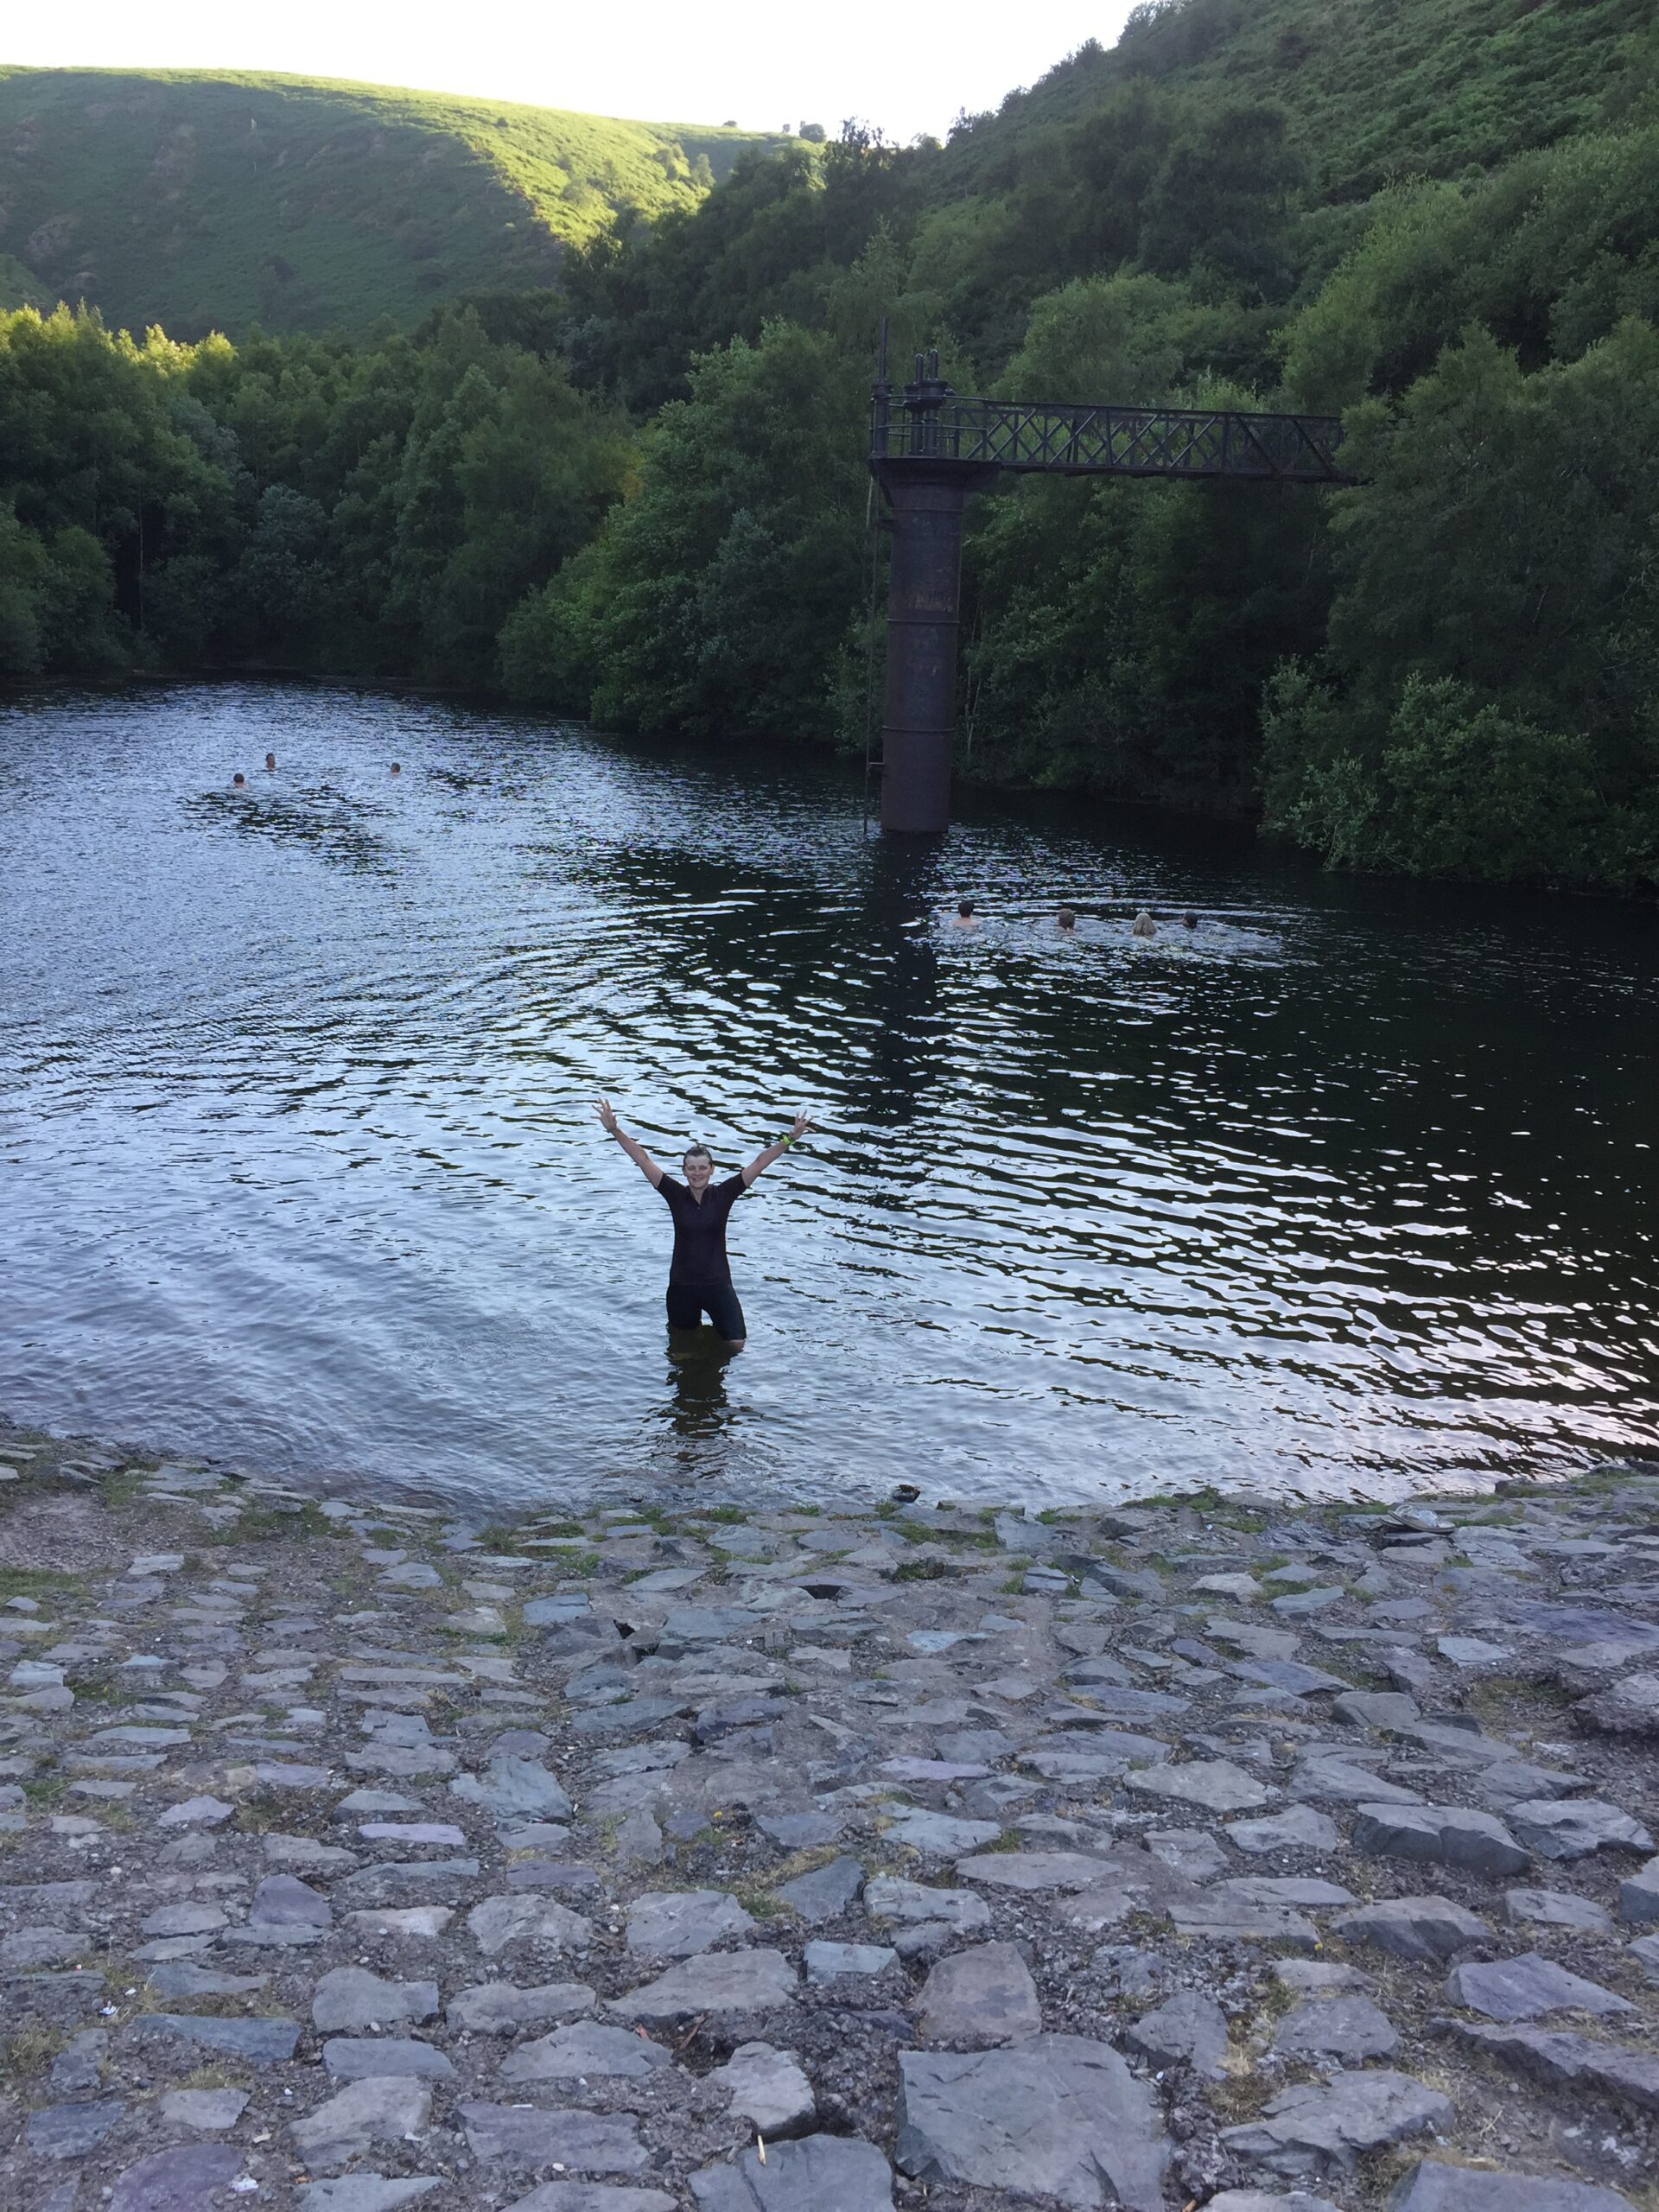 person emerging from swimming in old quarry, arms raised